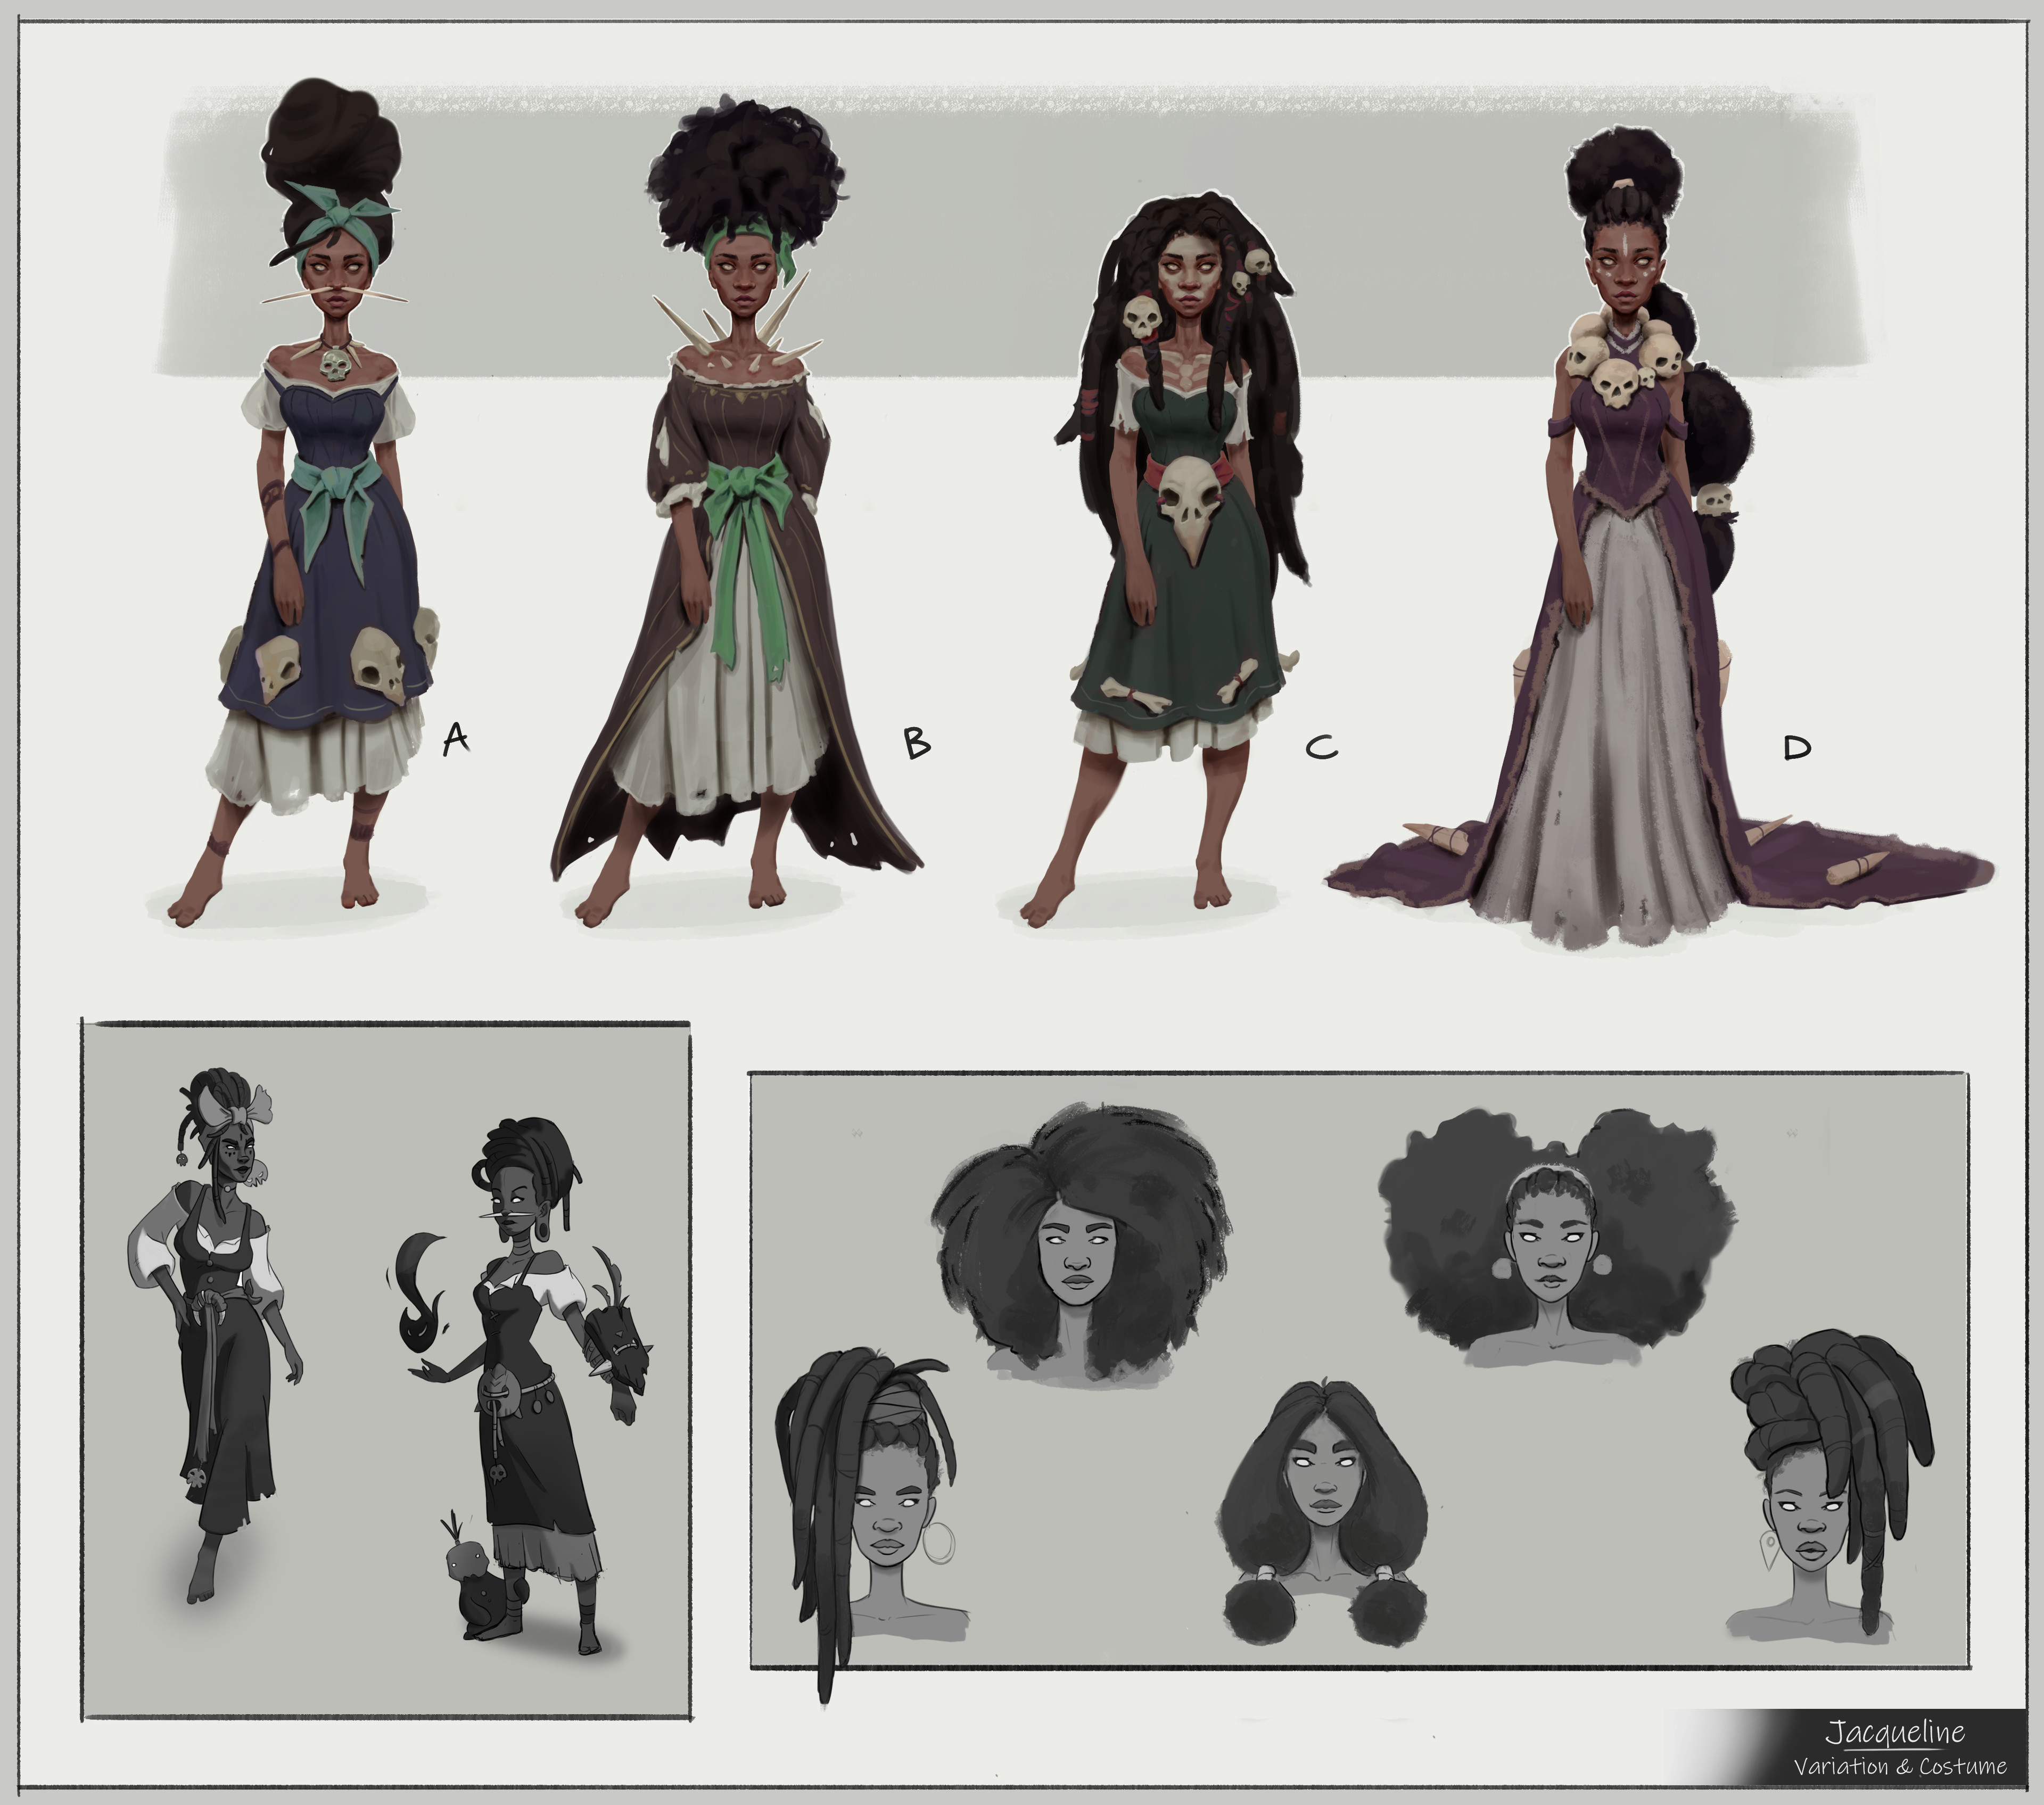 Variation and costume design.